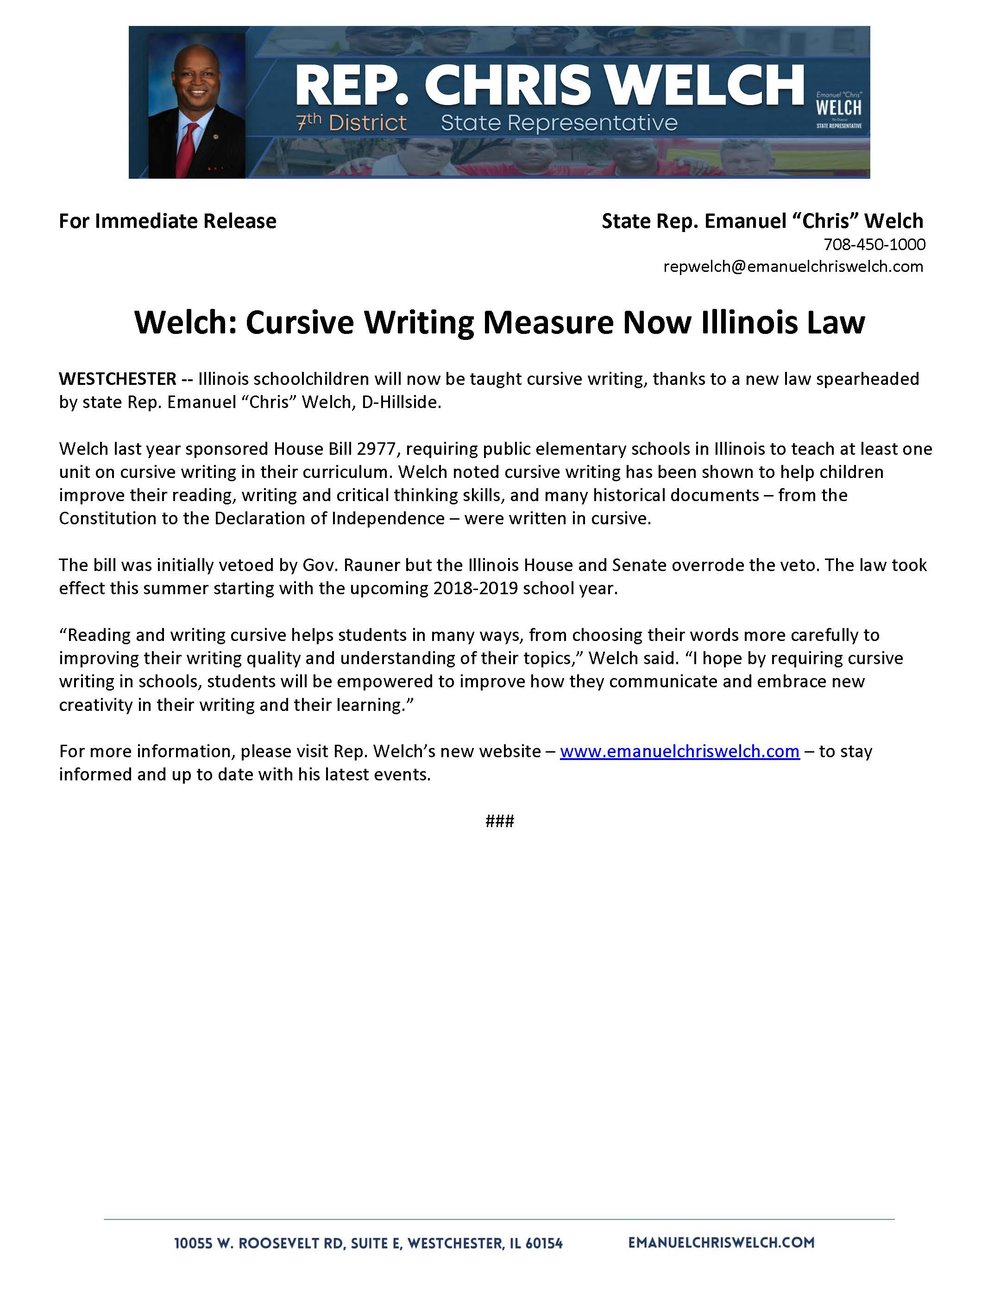 Welch: Cursive Writing Measure Now Illinois Law   (August 3, 2018)